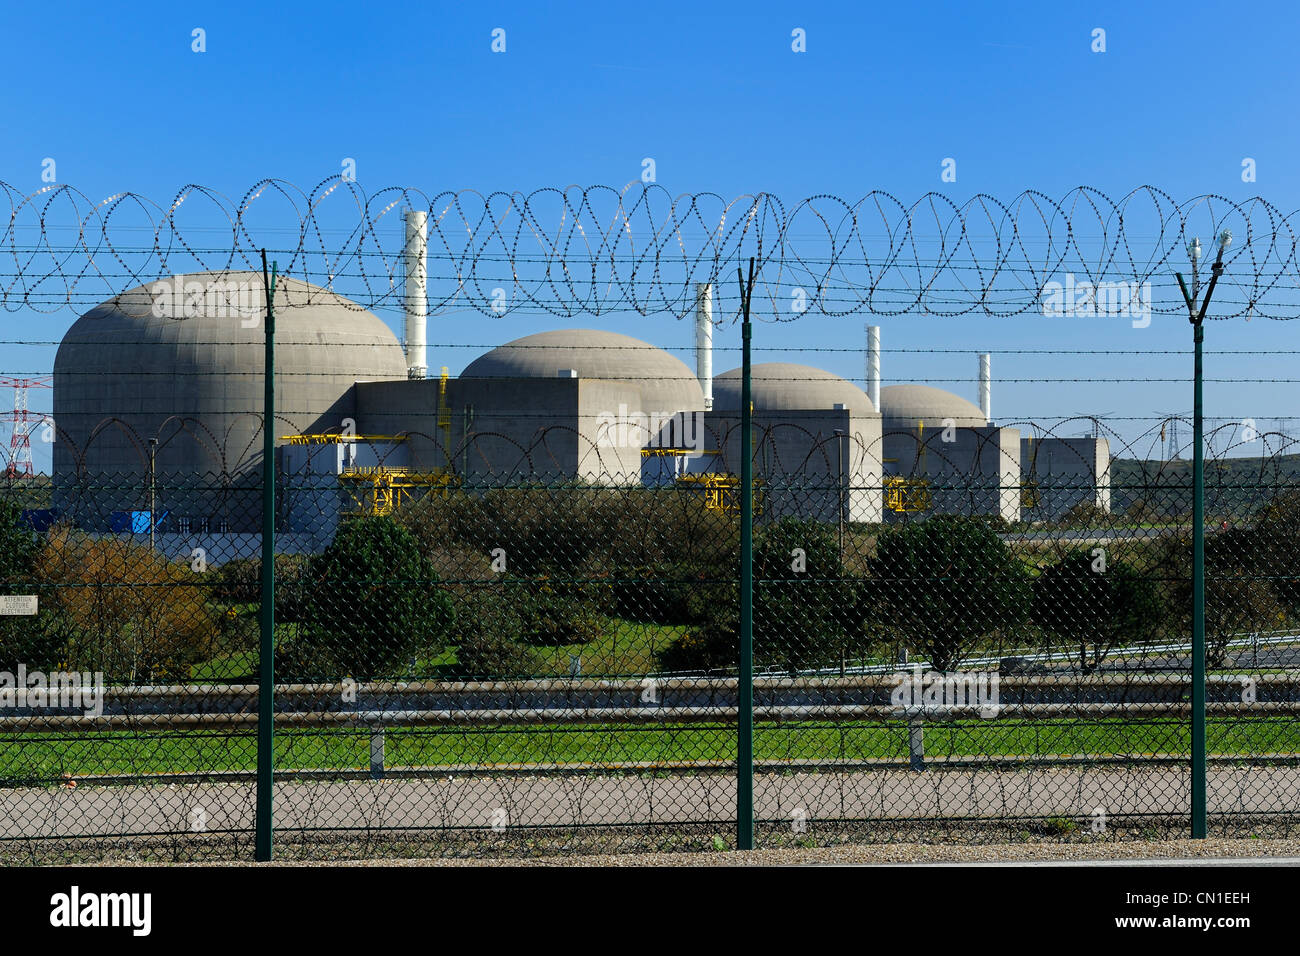 France, Seine Maritime, Nuclear power station Paluel - Stock Image